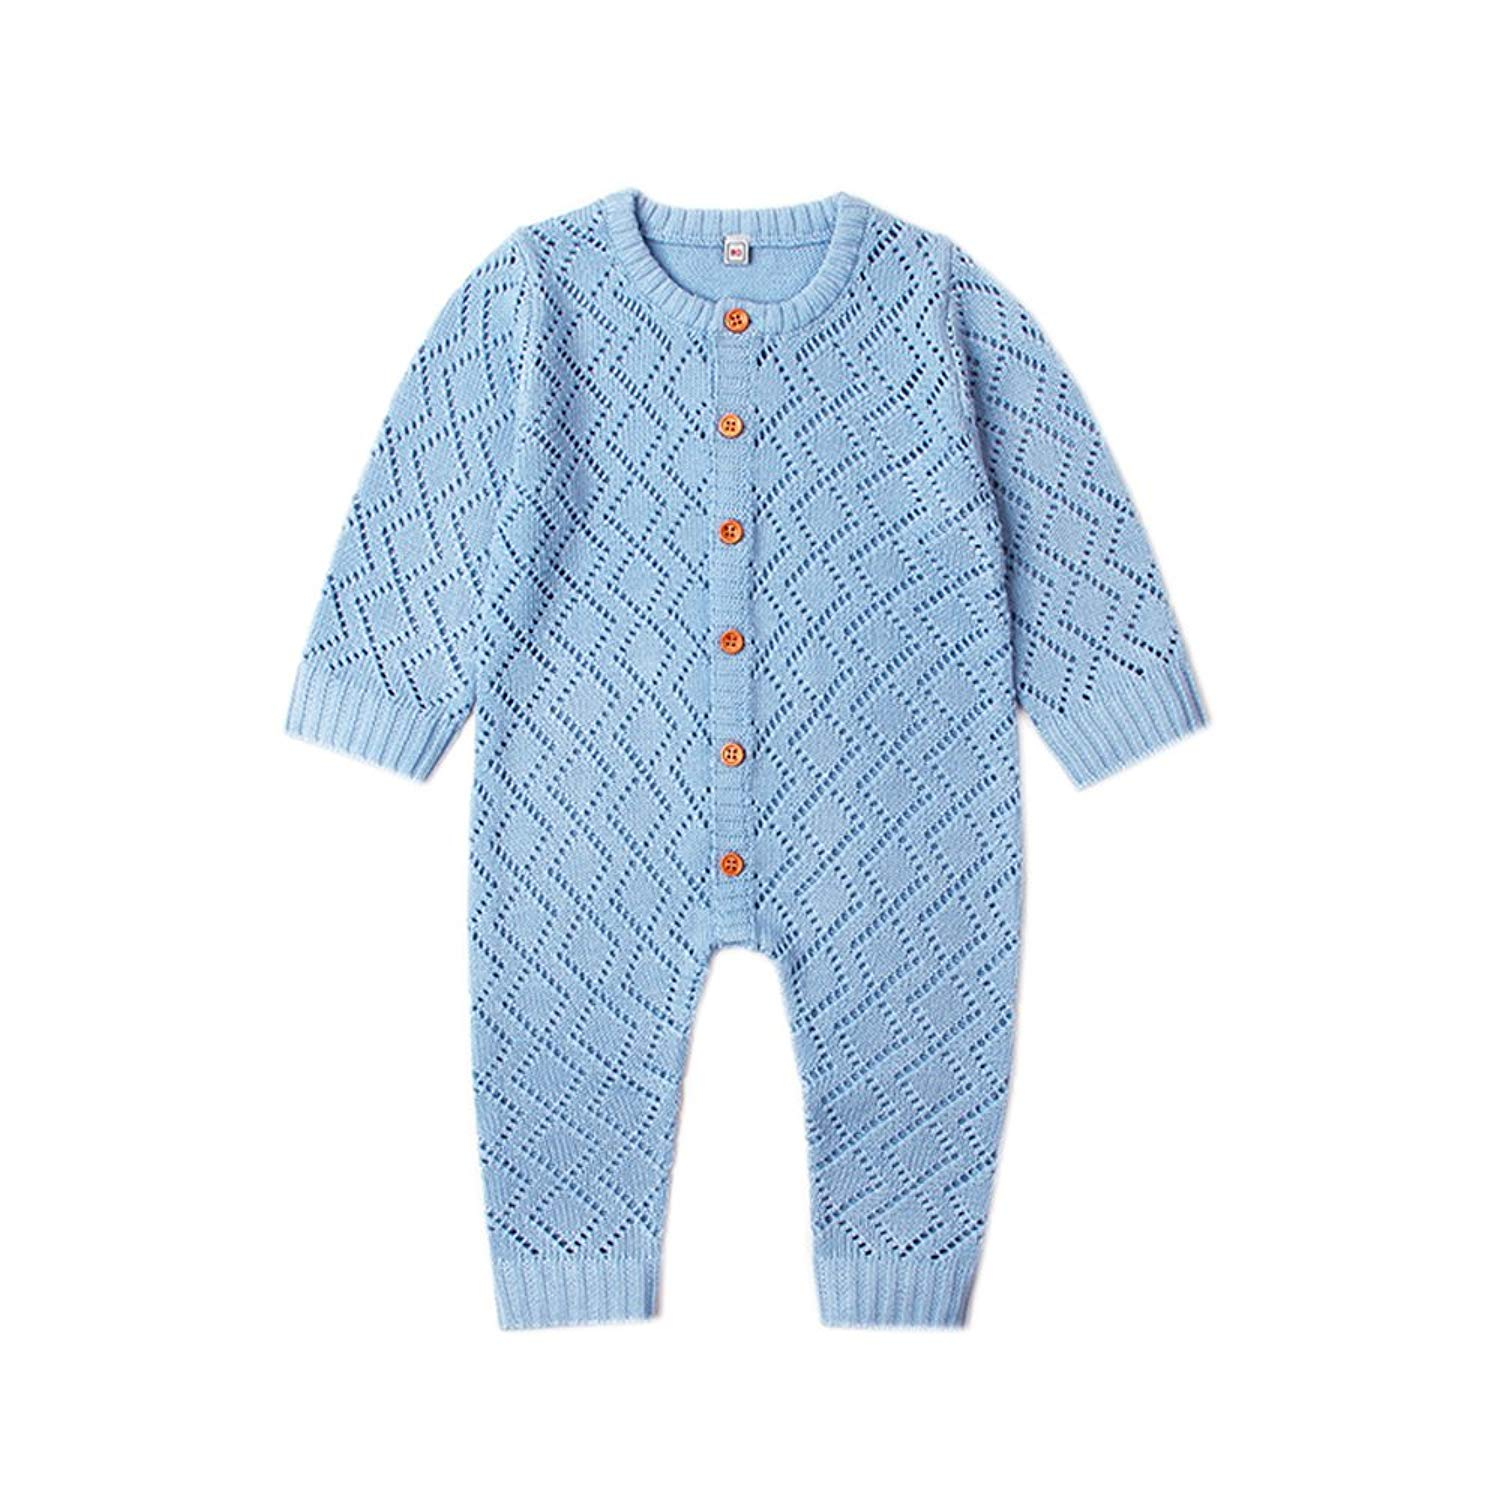 82771143a7a9c1 Get Quotations · Ziyunlong Baby Knit Romper Newborn Long Sleeve Breathable  Sweater One Piece Jumpsuit Infant Baby Clothes